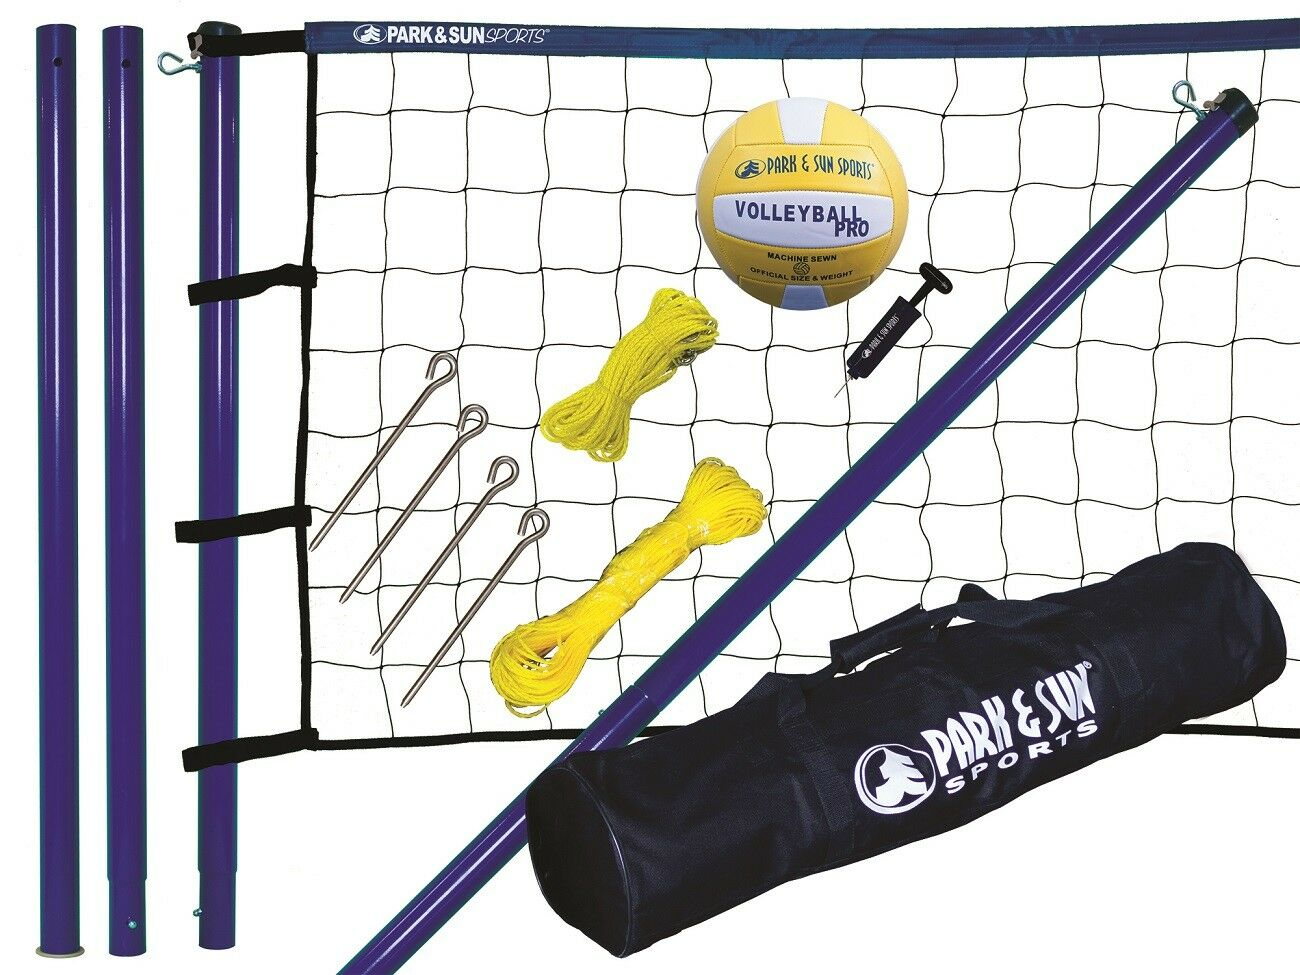 Beach Volleyball Komplett Set Mobile Netzanlage Netzanlage Netzanlage + Ball + Tasche Spiker Steel NEU 1d674e